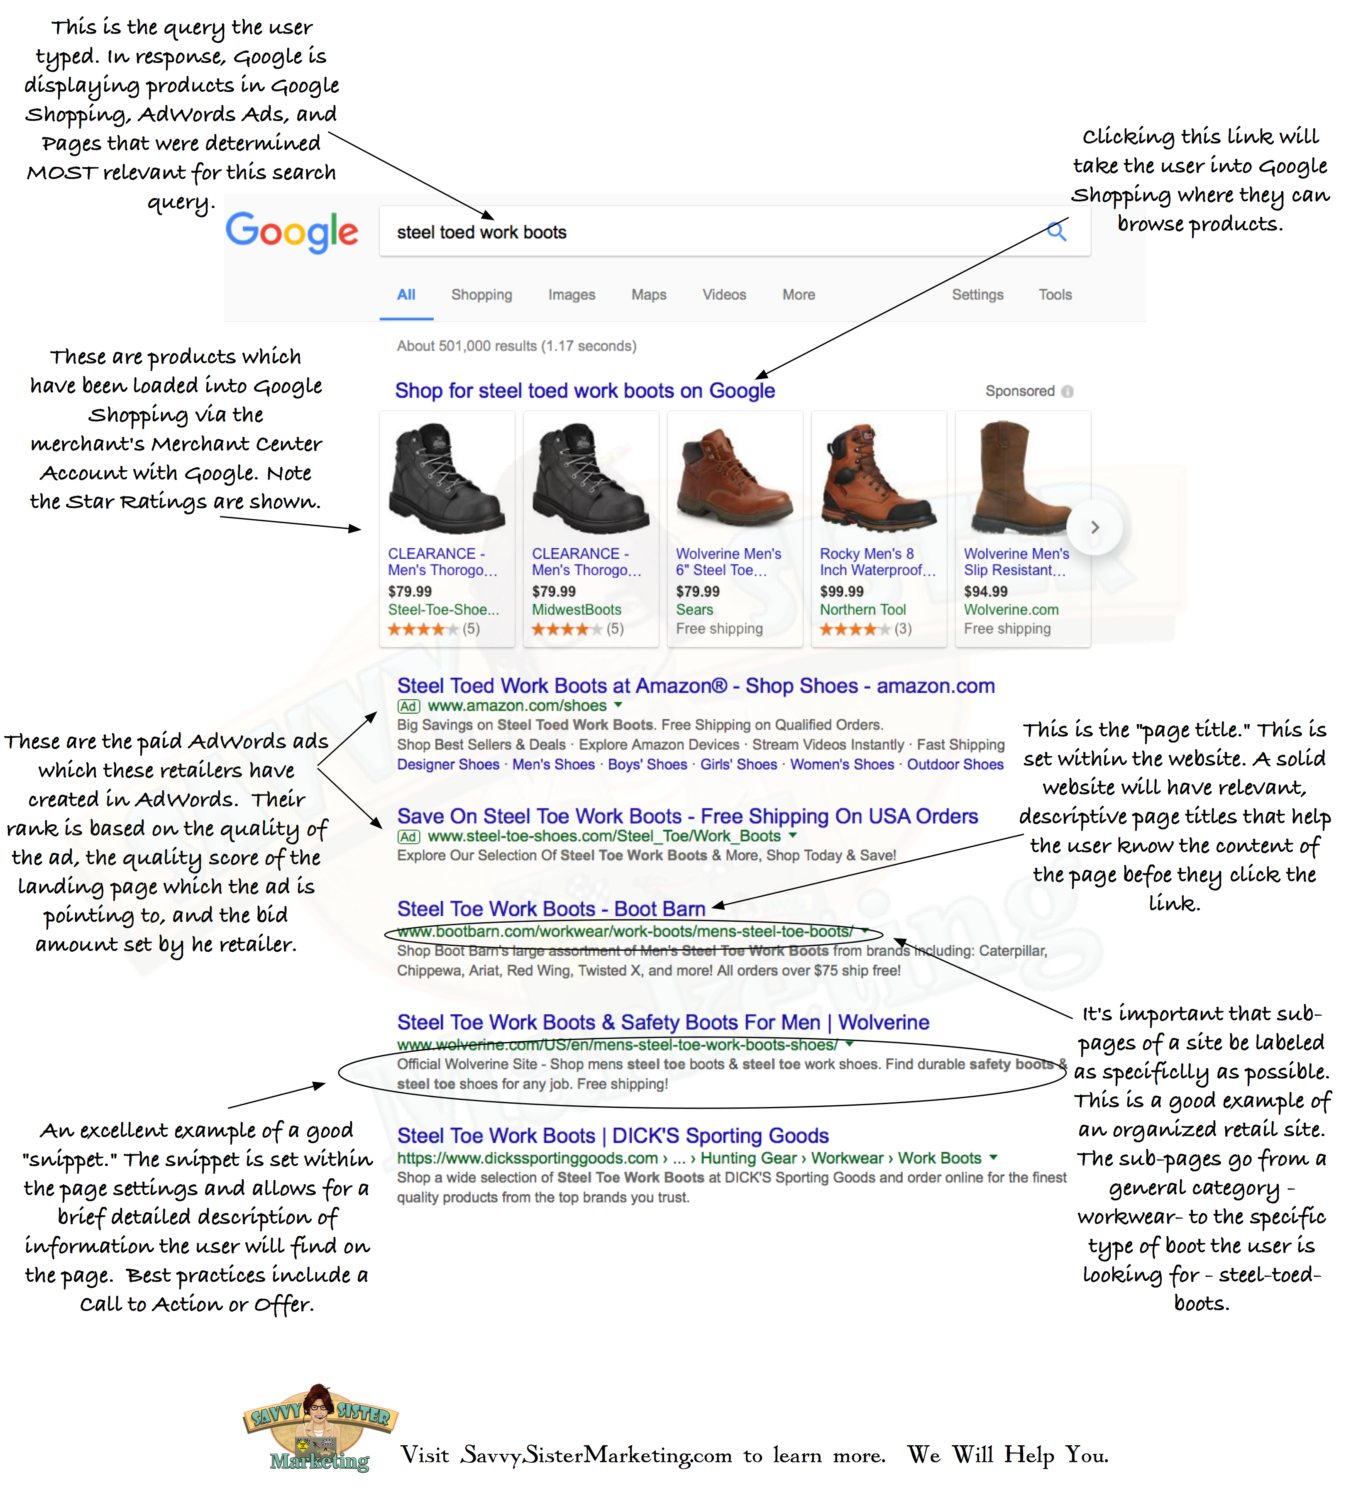 Anatomy of a Search Engine Results Page Google